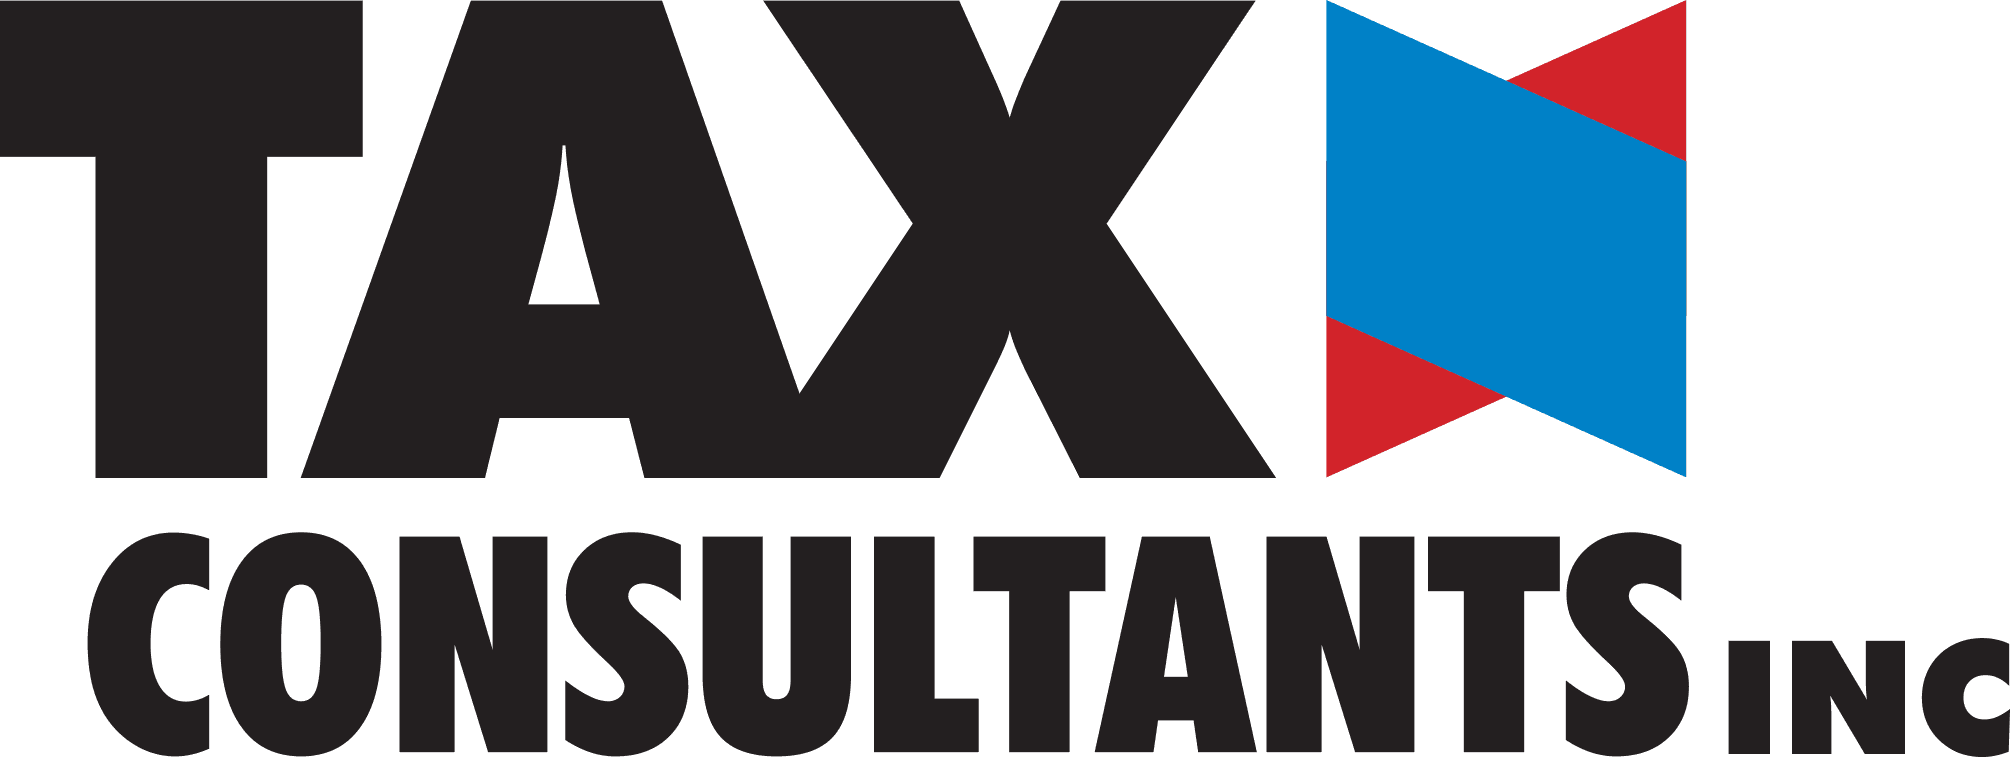 Tax Consultants Inc - logo